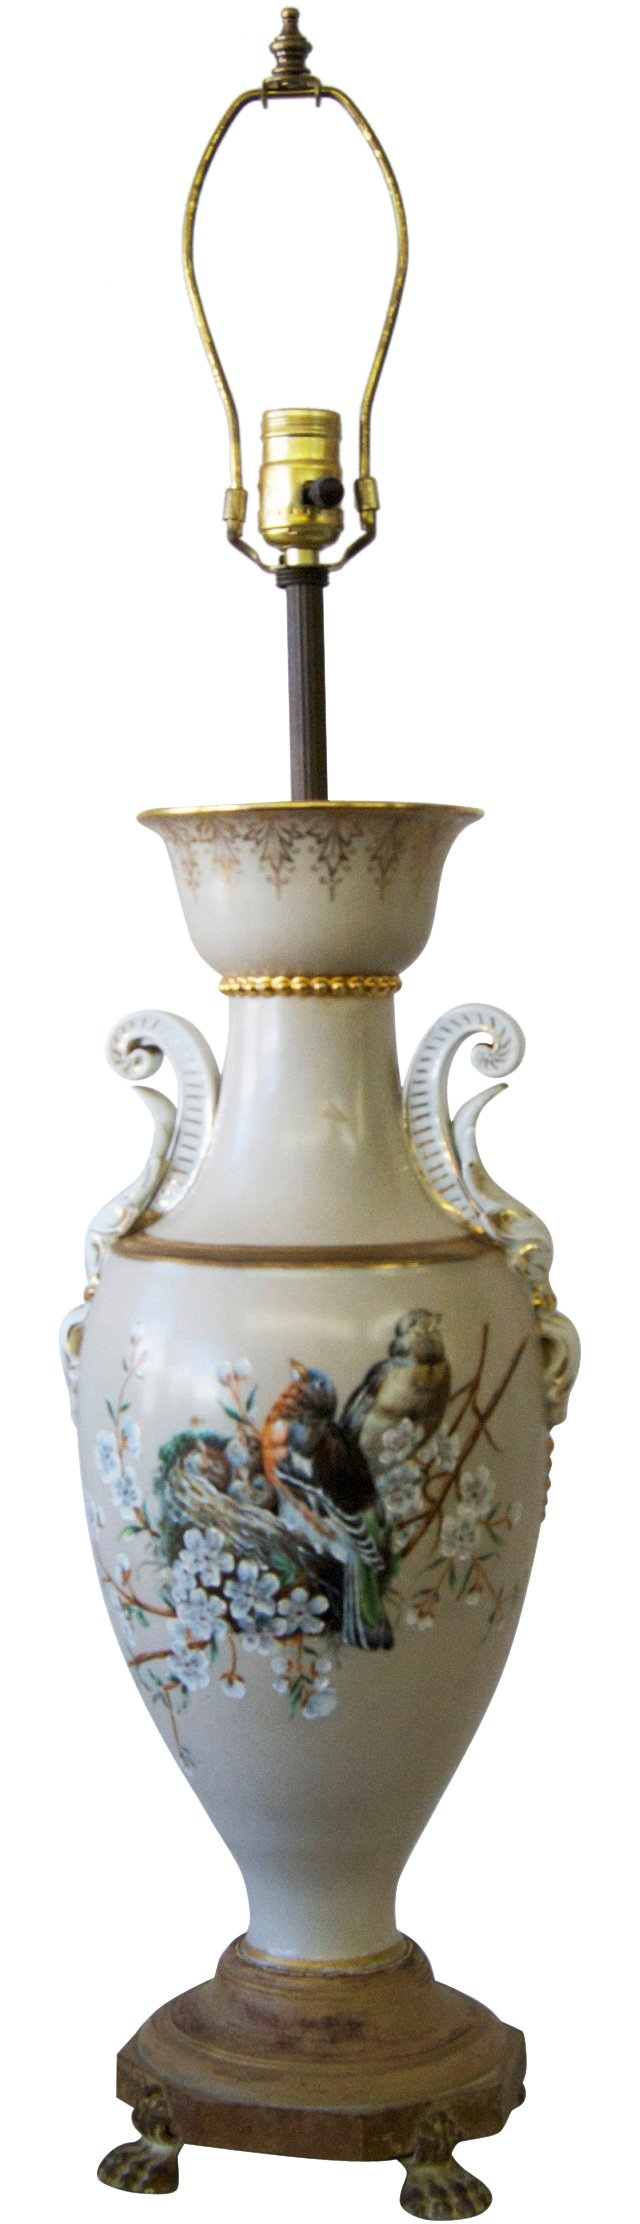 19th-C. Painted Lamp